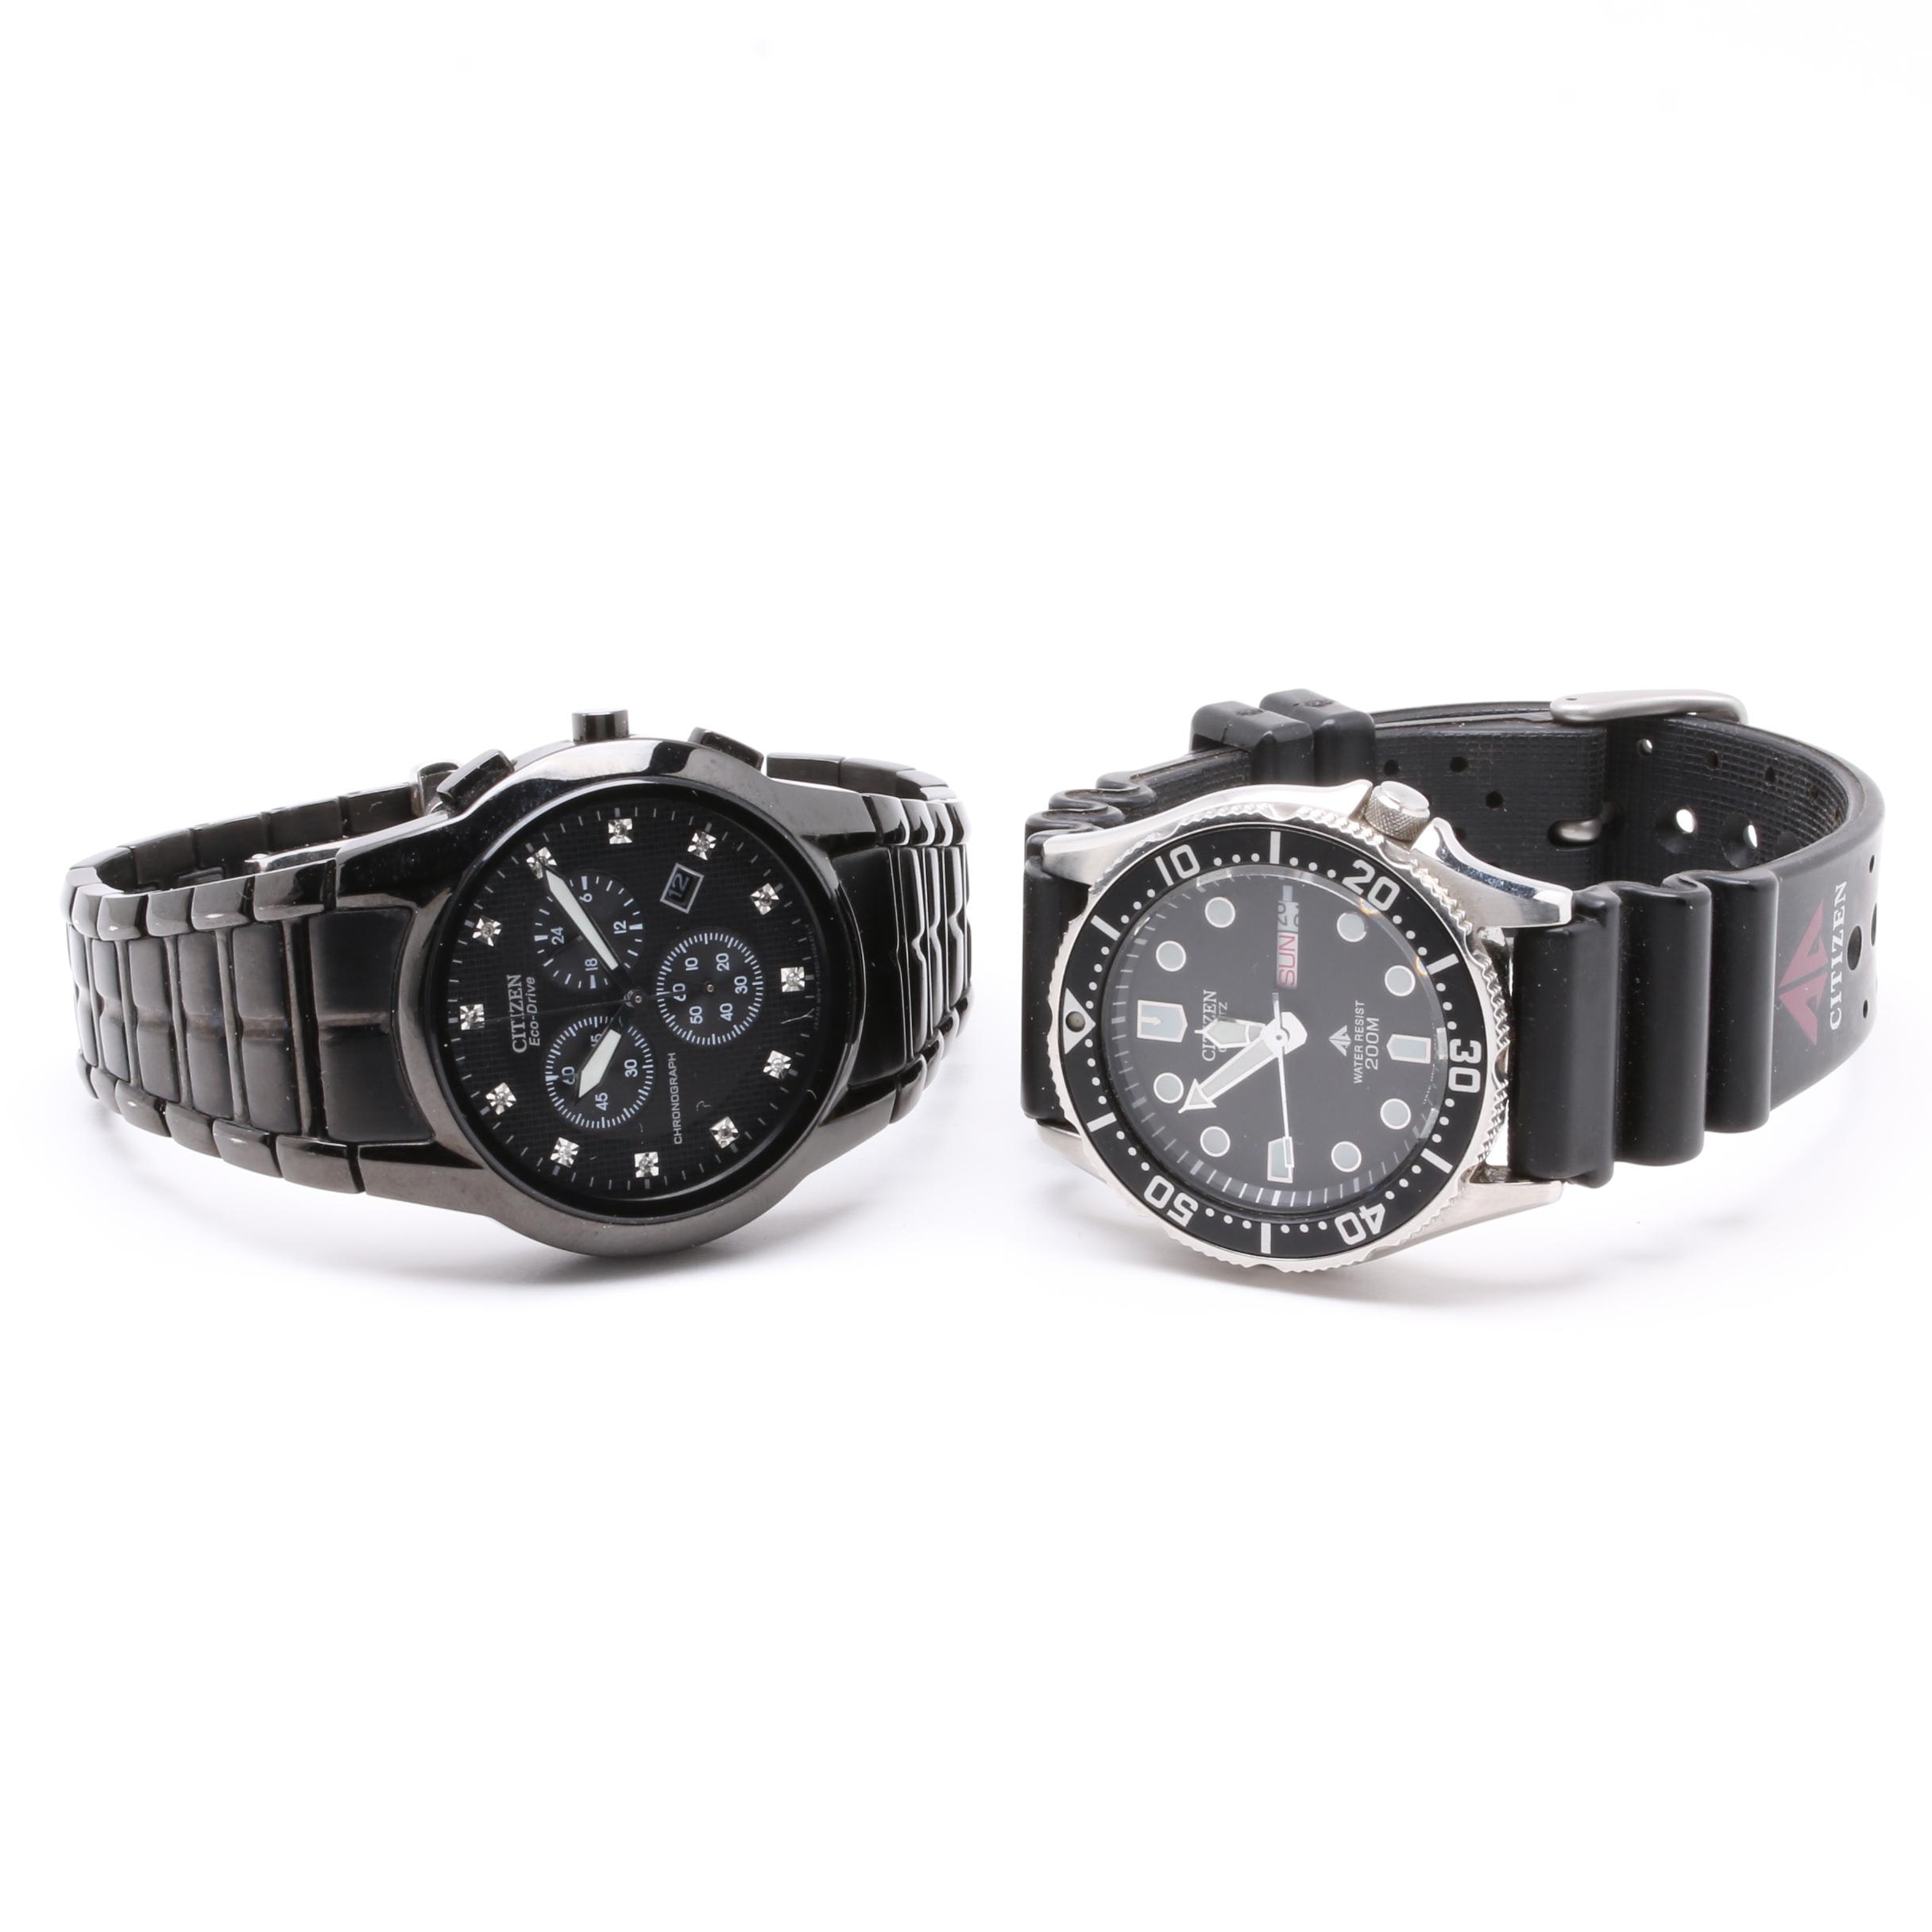 Citizen Promaster and Chronograph Wristwatches